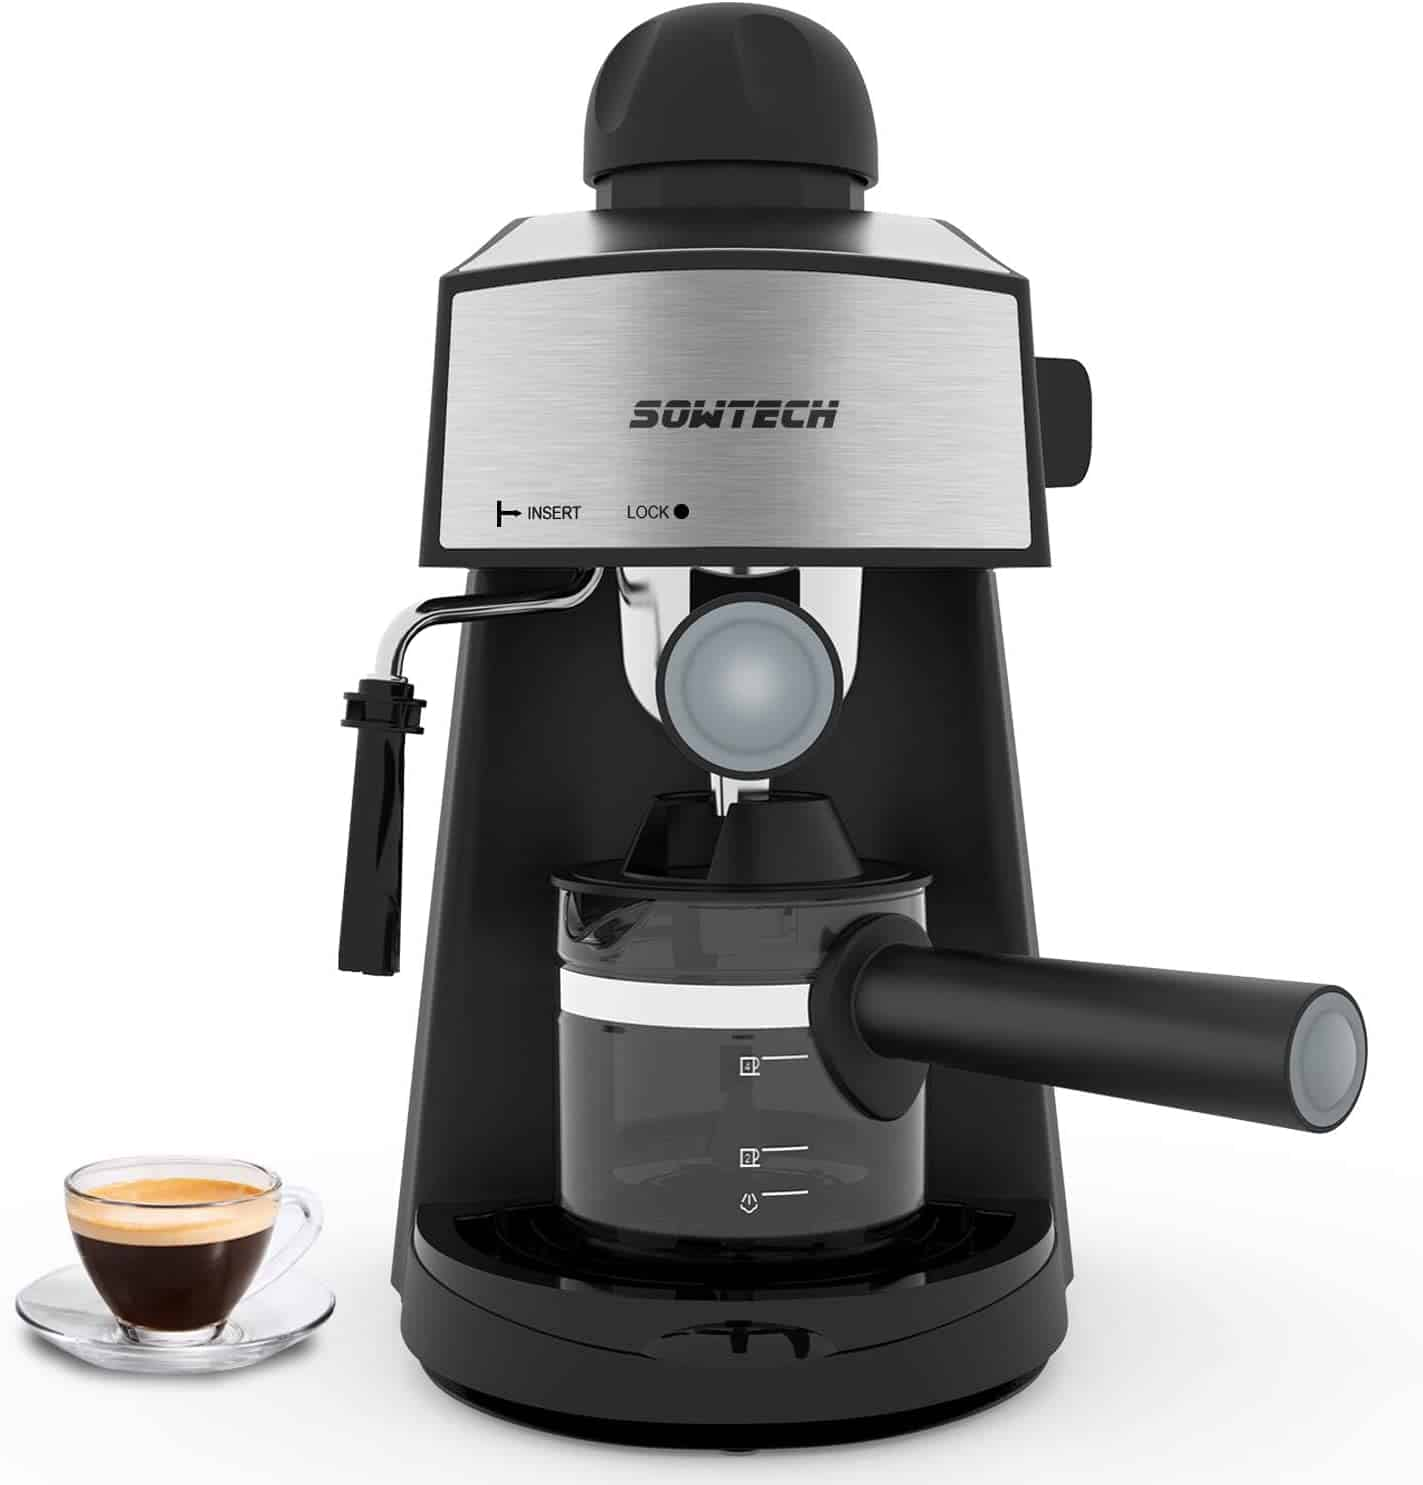 Sowtech Espresso Maker with Steam Milk Frother